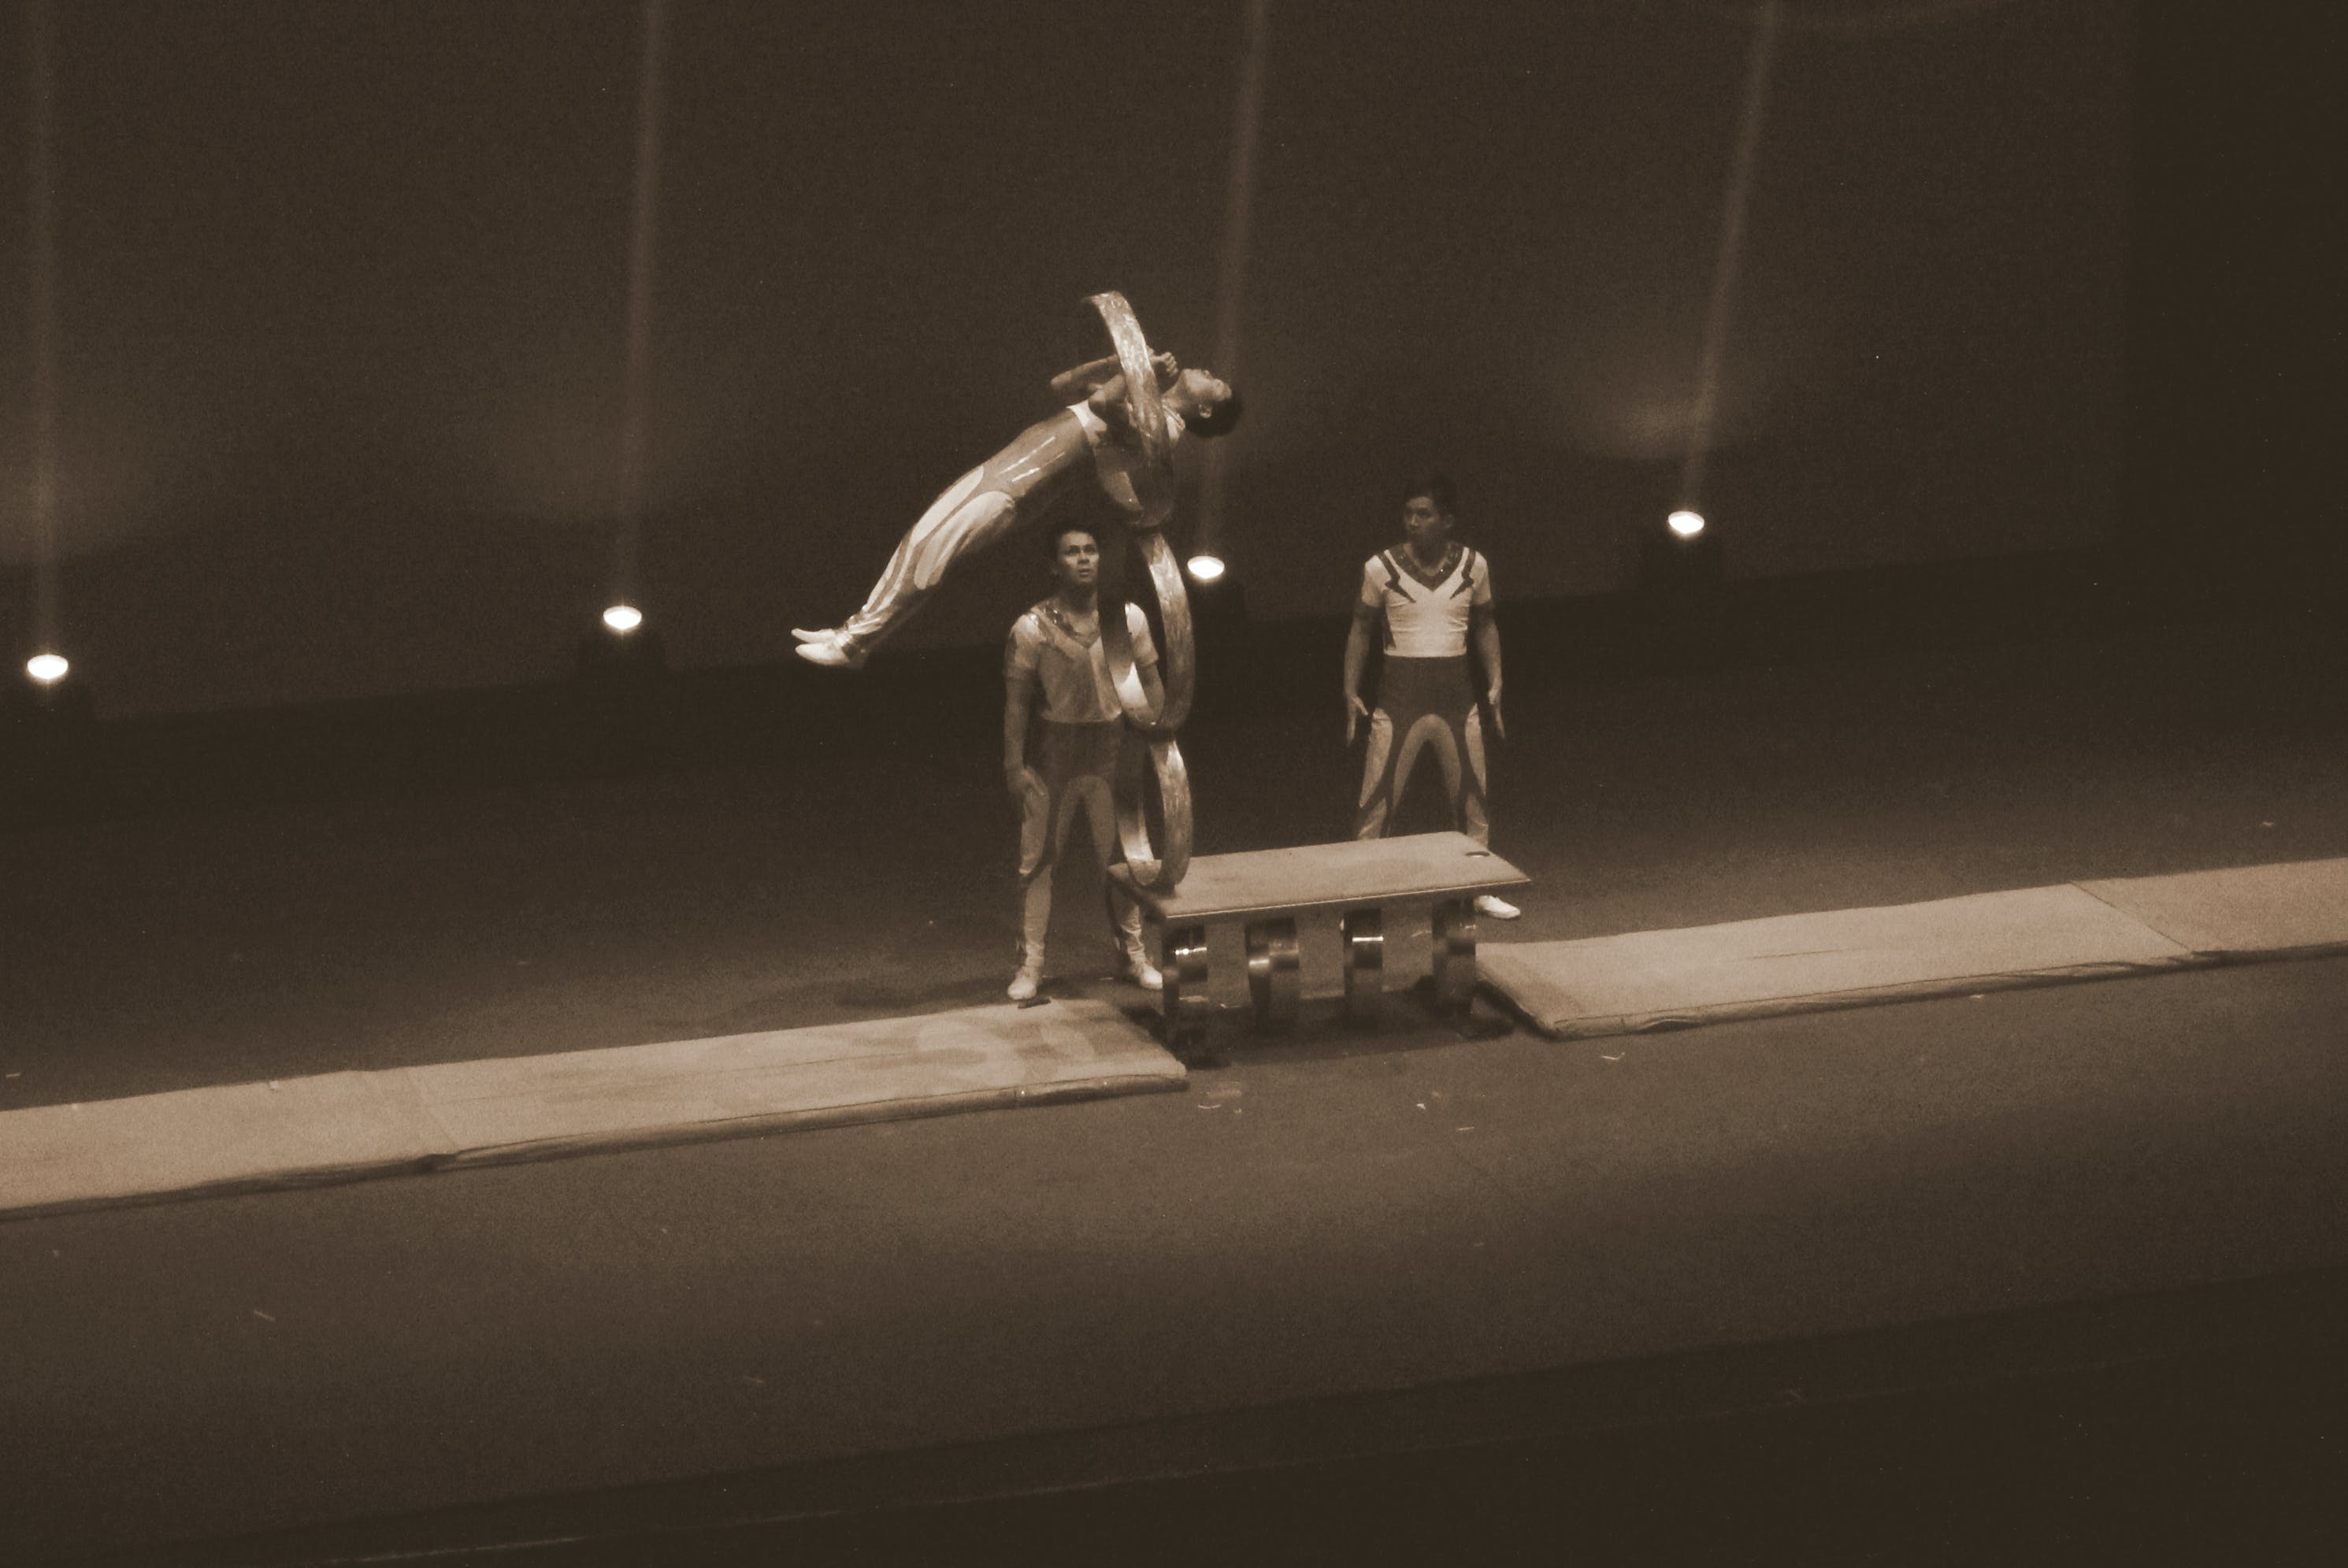 Free stock photo of acrobatic, flying, jumping, sepia